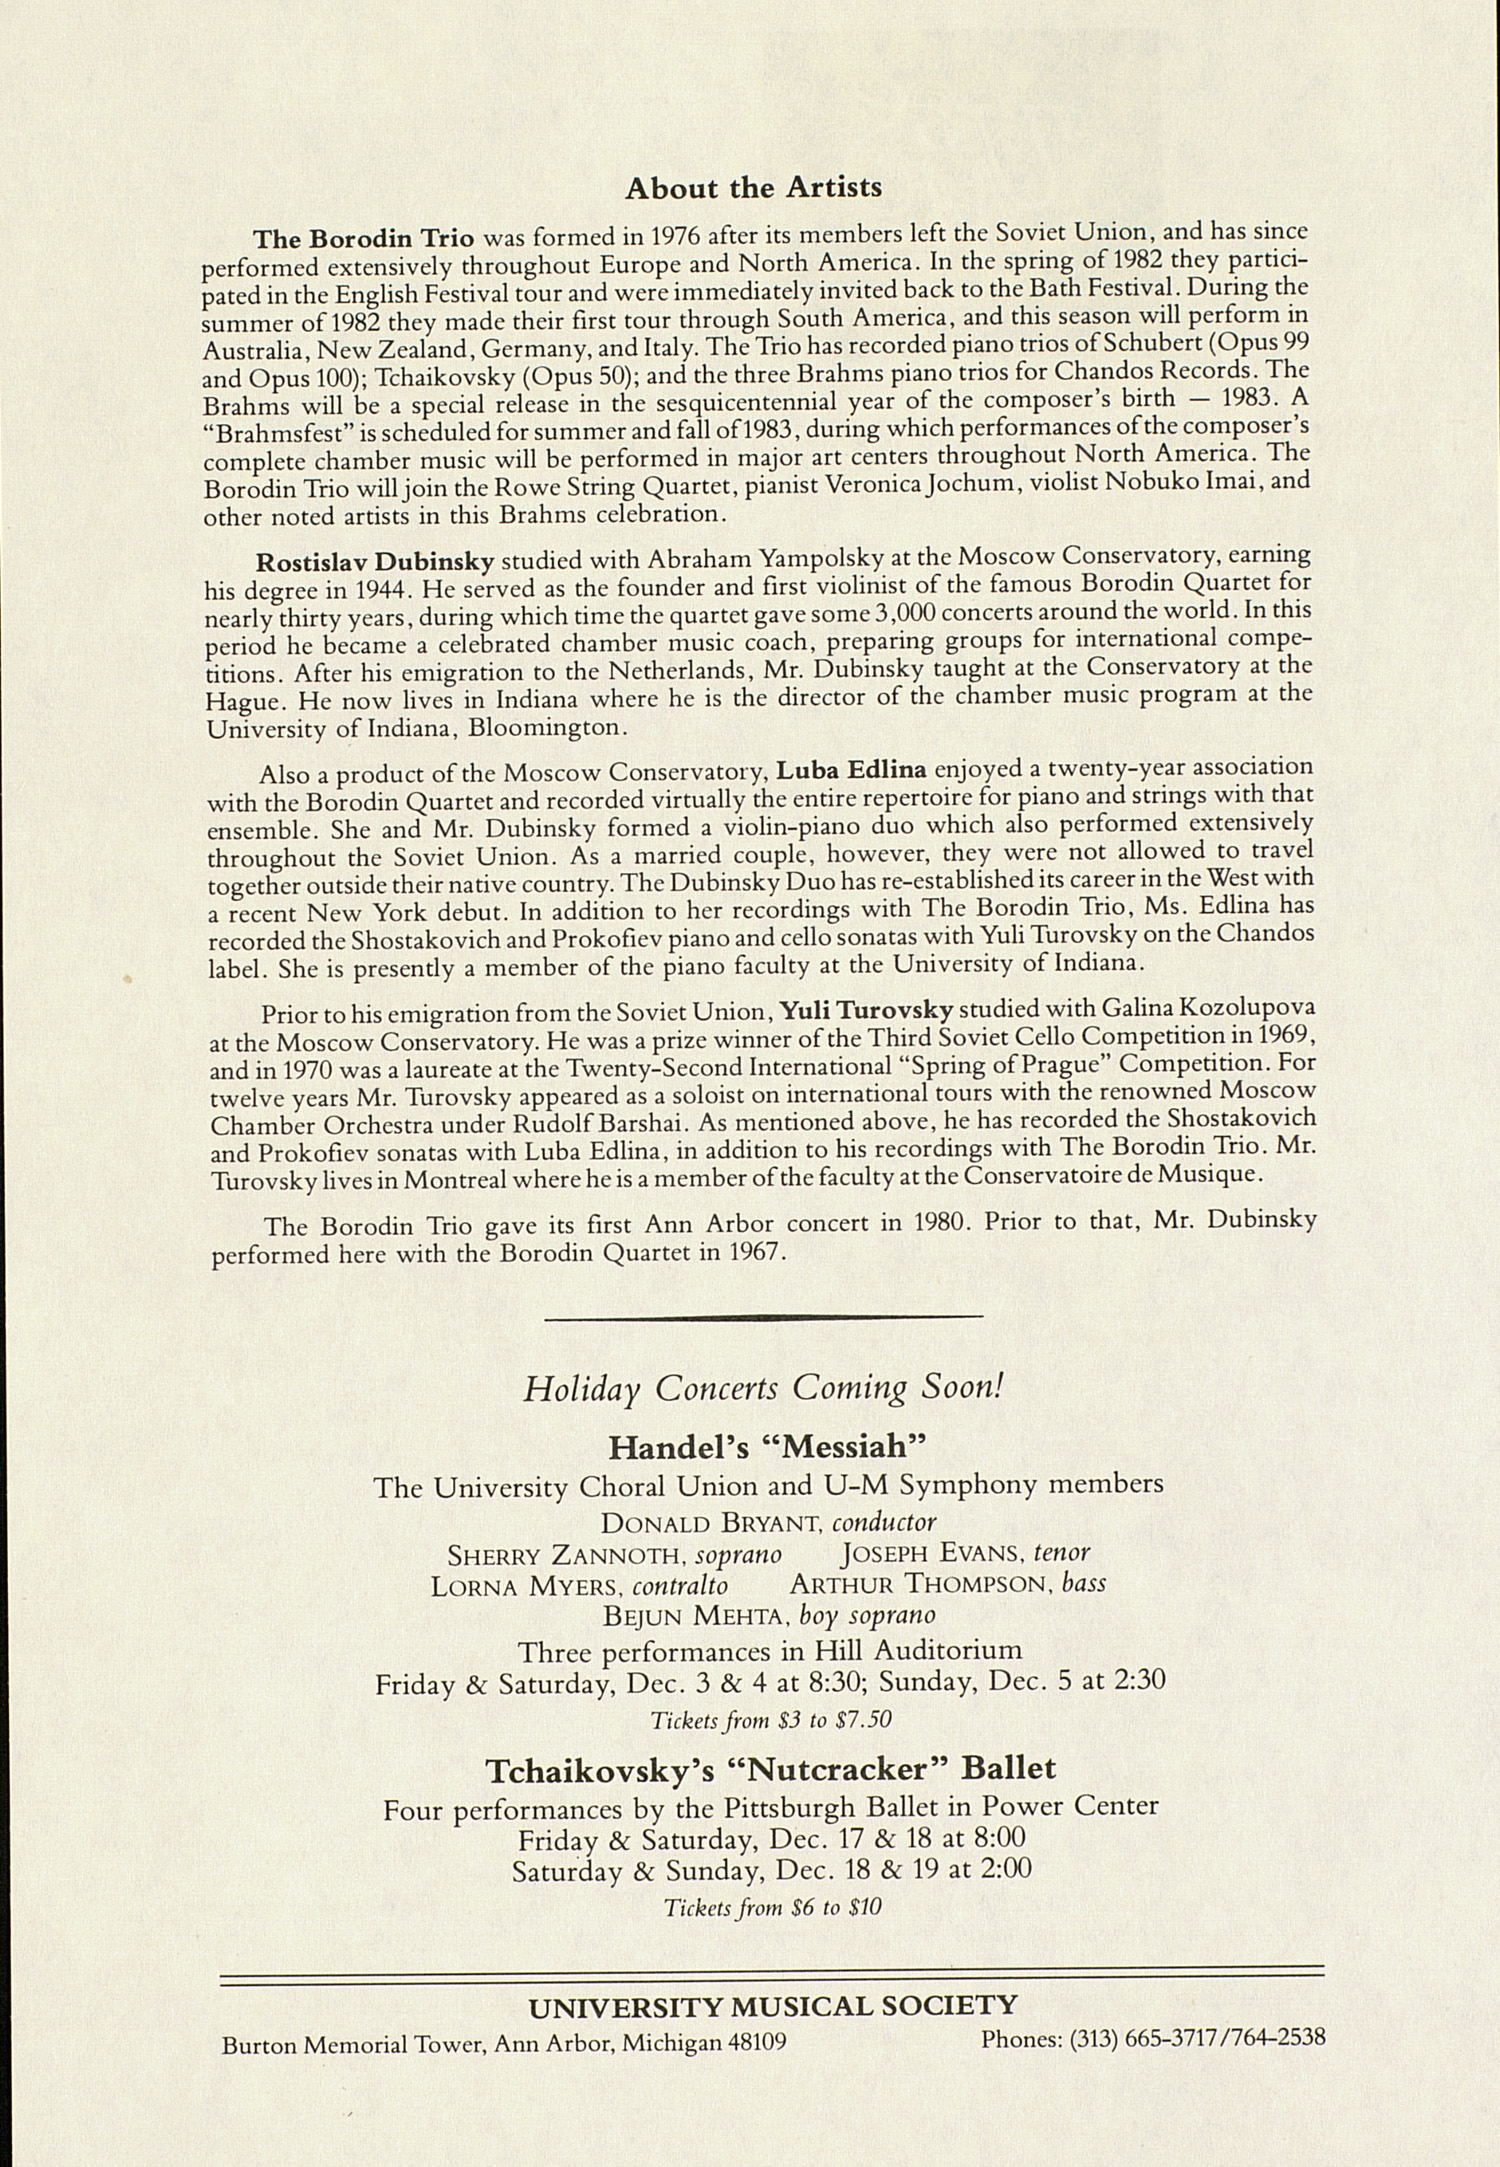 UMS Concert Program, November 20, 1982: International Presentations Of Music & Dance -- The Borodin Trio image